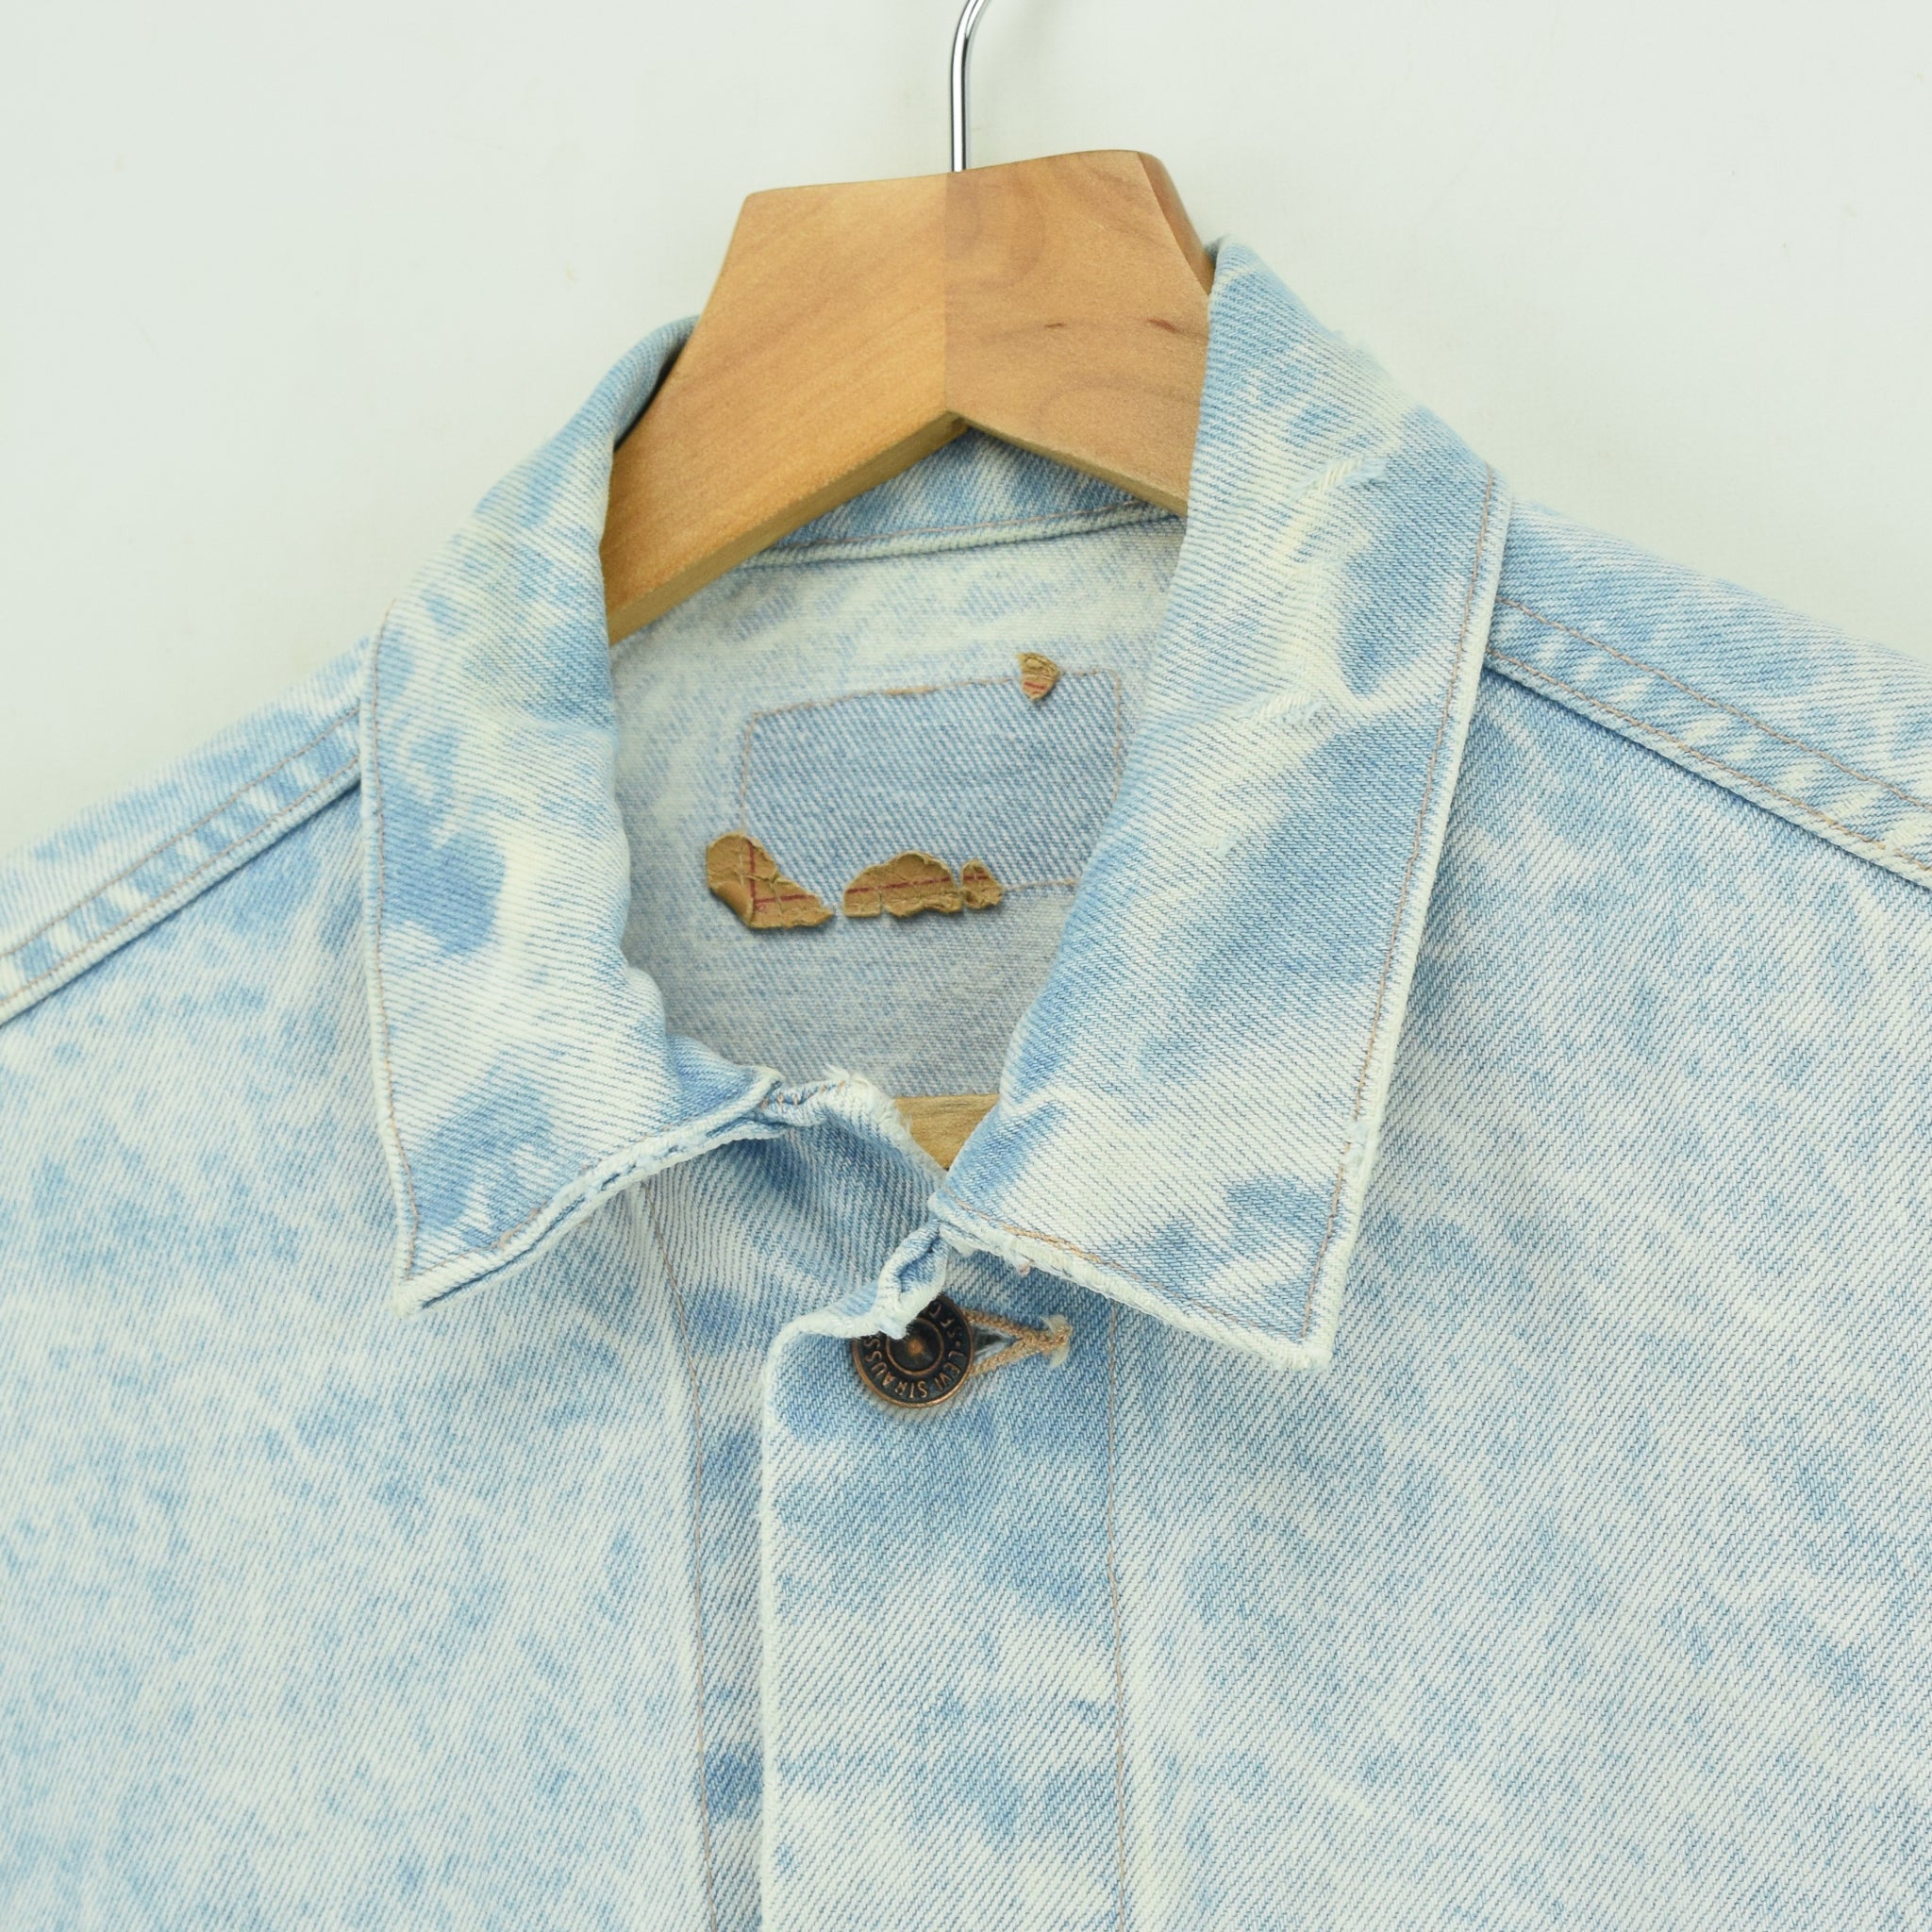 Vintage Levi Red Tab Bleached Blue Denim Trucker Jacket Made in USA S collar